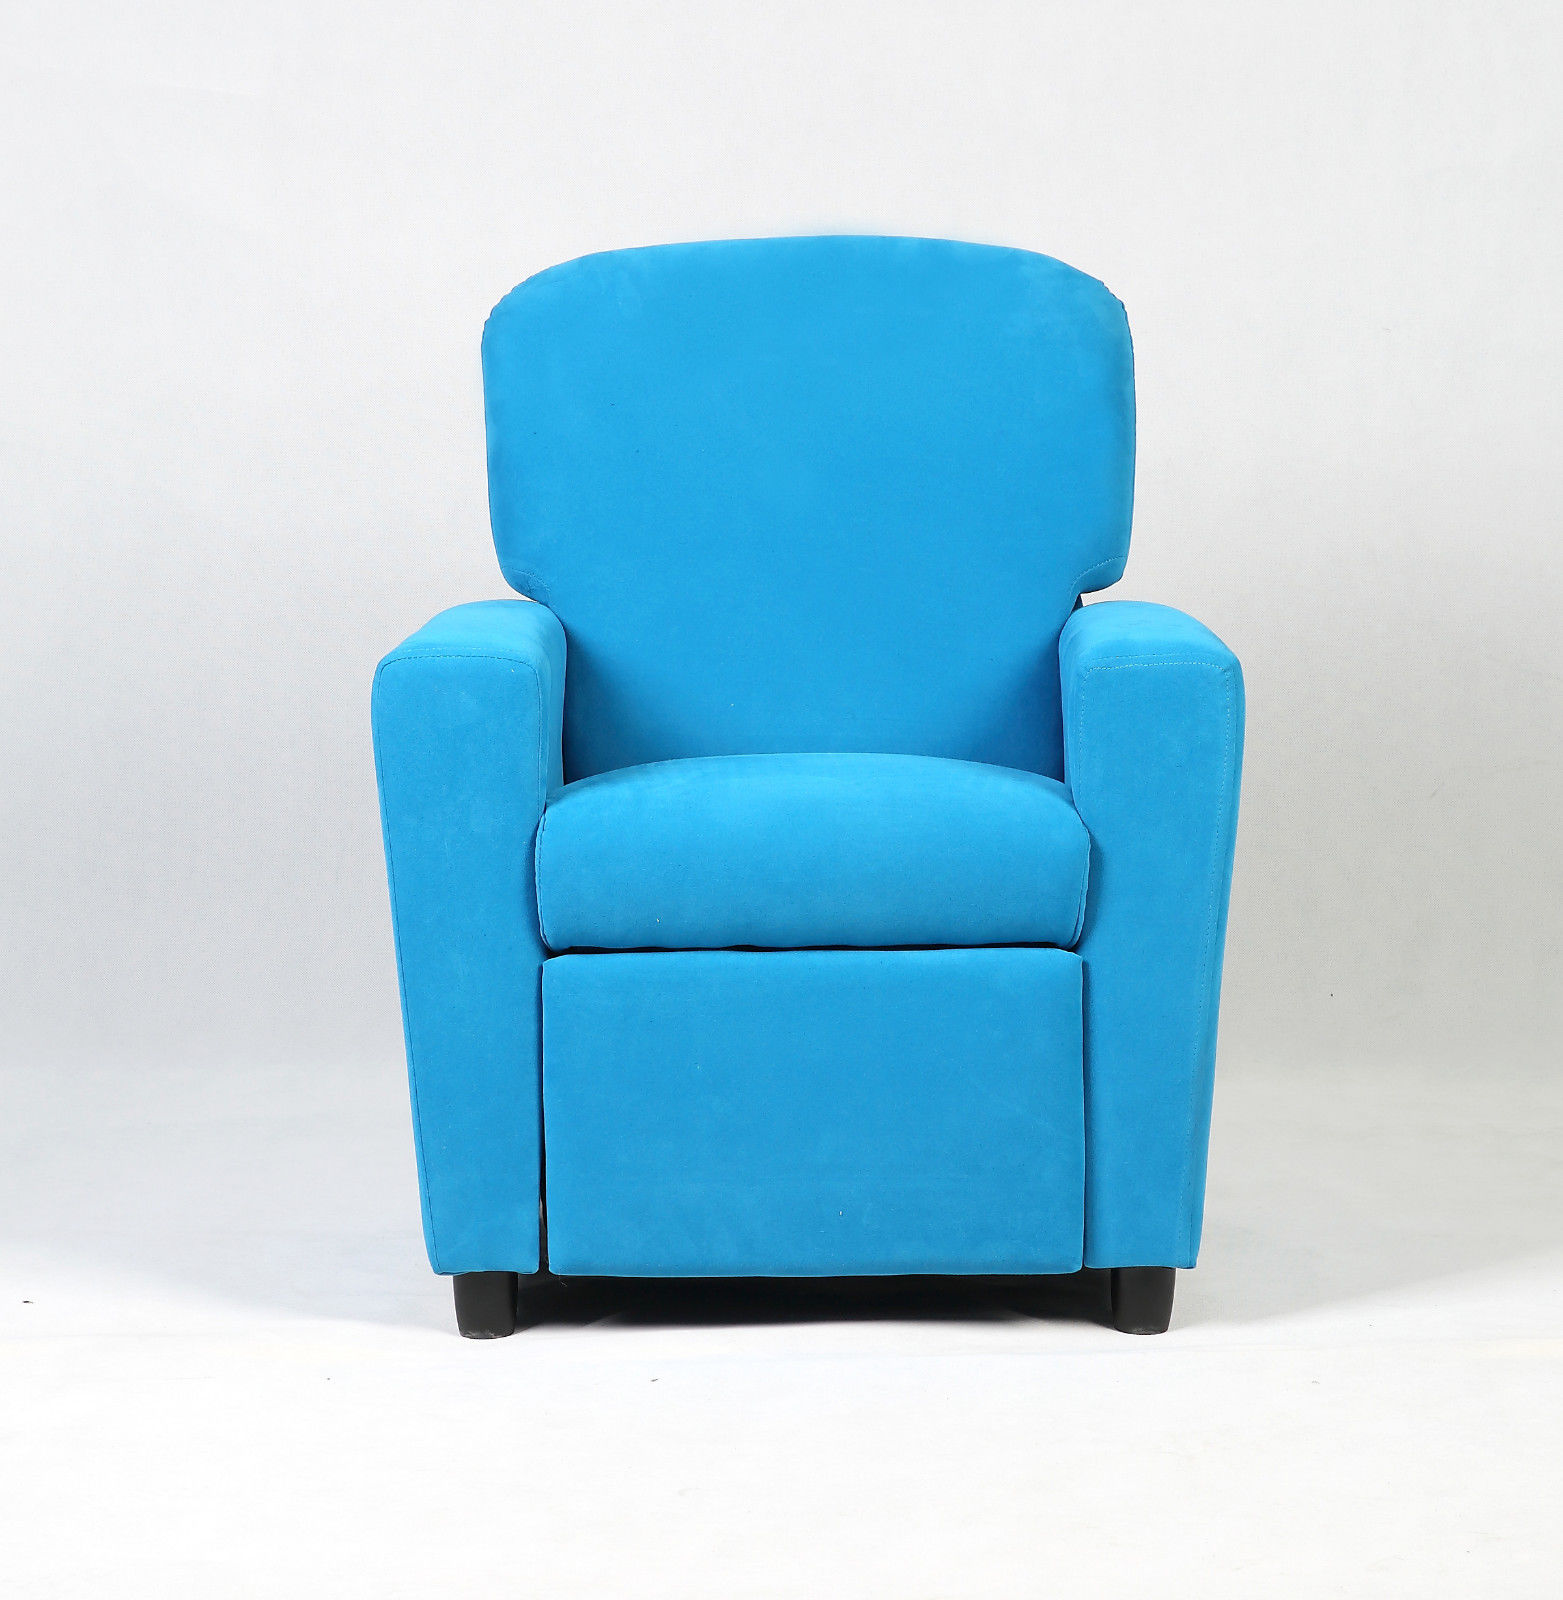 High Quality Goplus Kids Recliner Sofa Armrest Chair Couch Lounge Children Living Room  Furniture Blue   Walmart.com